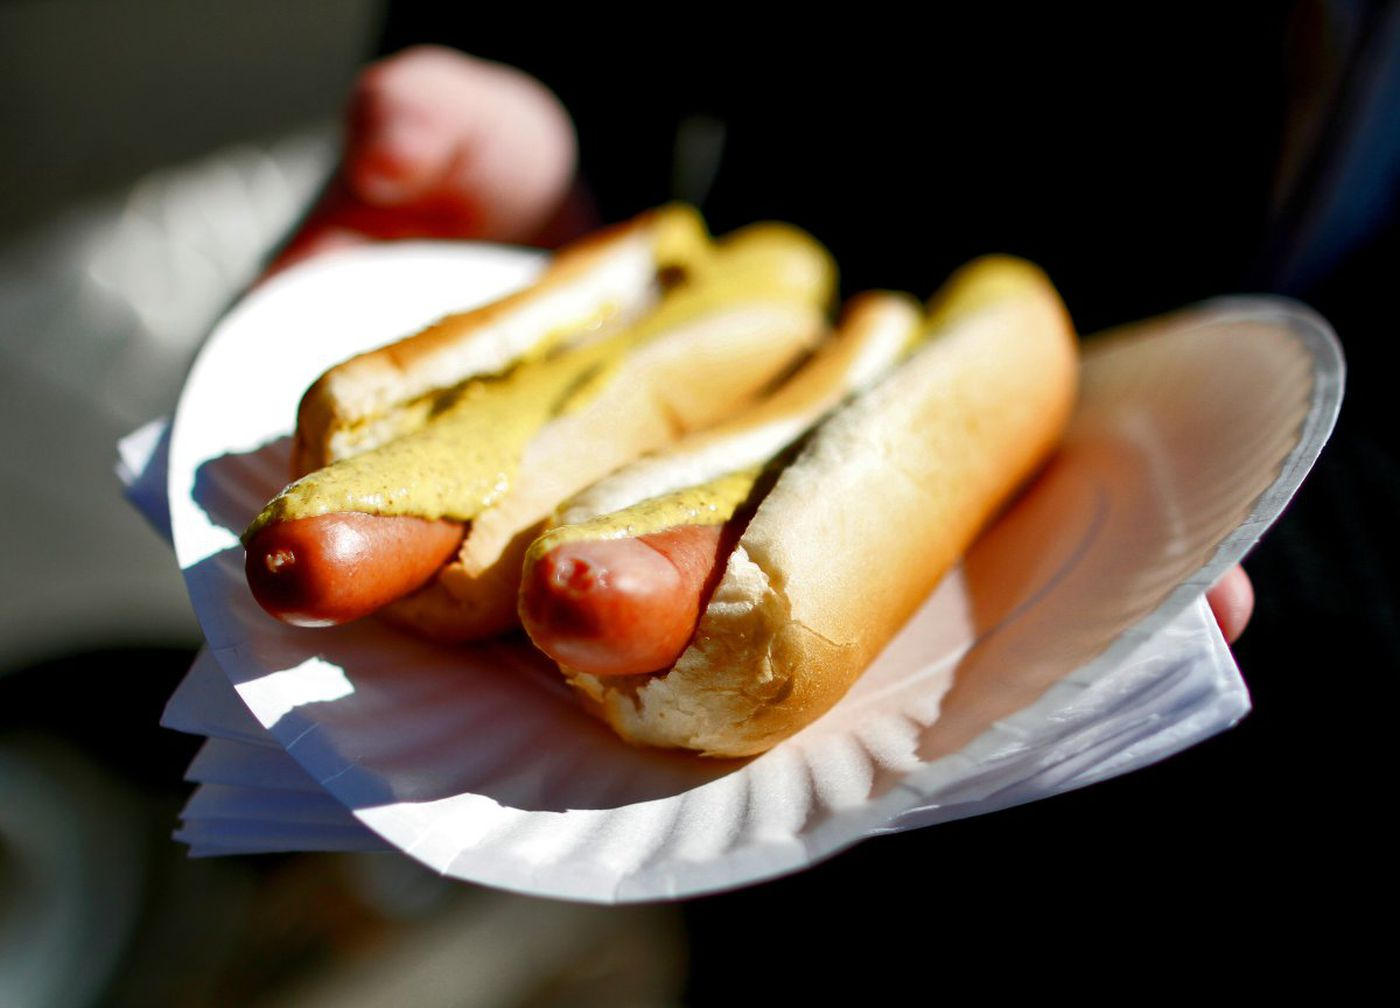 Upscale Recall Was Touched Off By A Customer Calling A Departmentof Agriculture Seven Million Pounds Hot Dogs Recalled Over Bone Fragment Nathan S Hot Dog Recall Number Nathan S Hot Dog Recall List nice food Nathans Hotdog Recall